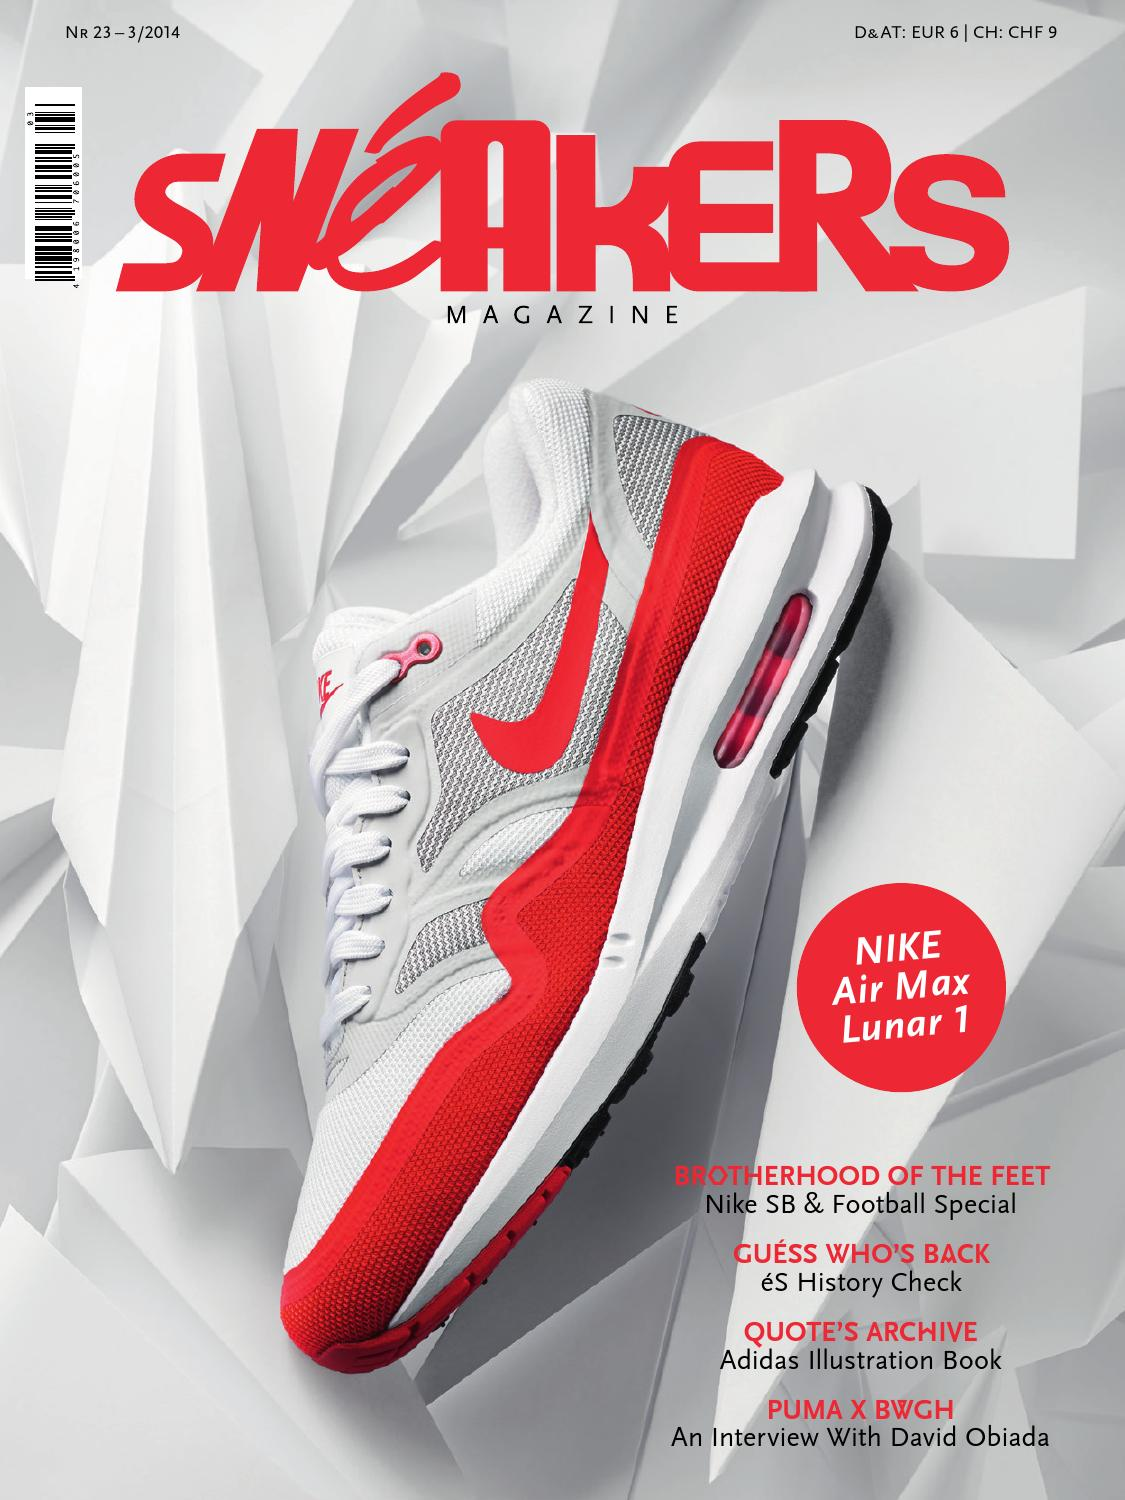 b6c10c8006a98a Sneakers Magazine 23 by Monday Publishing GmbH - issuu